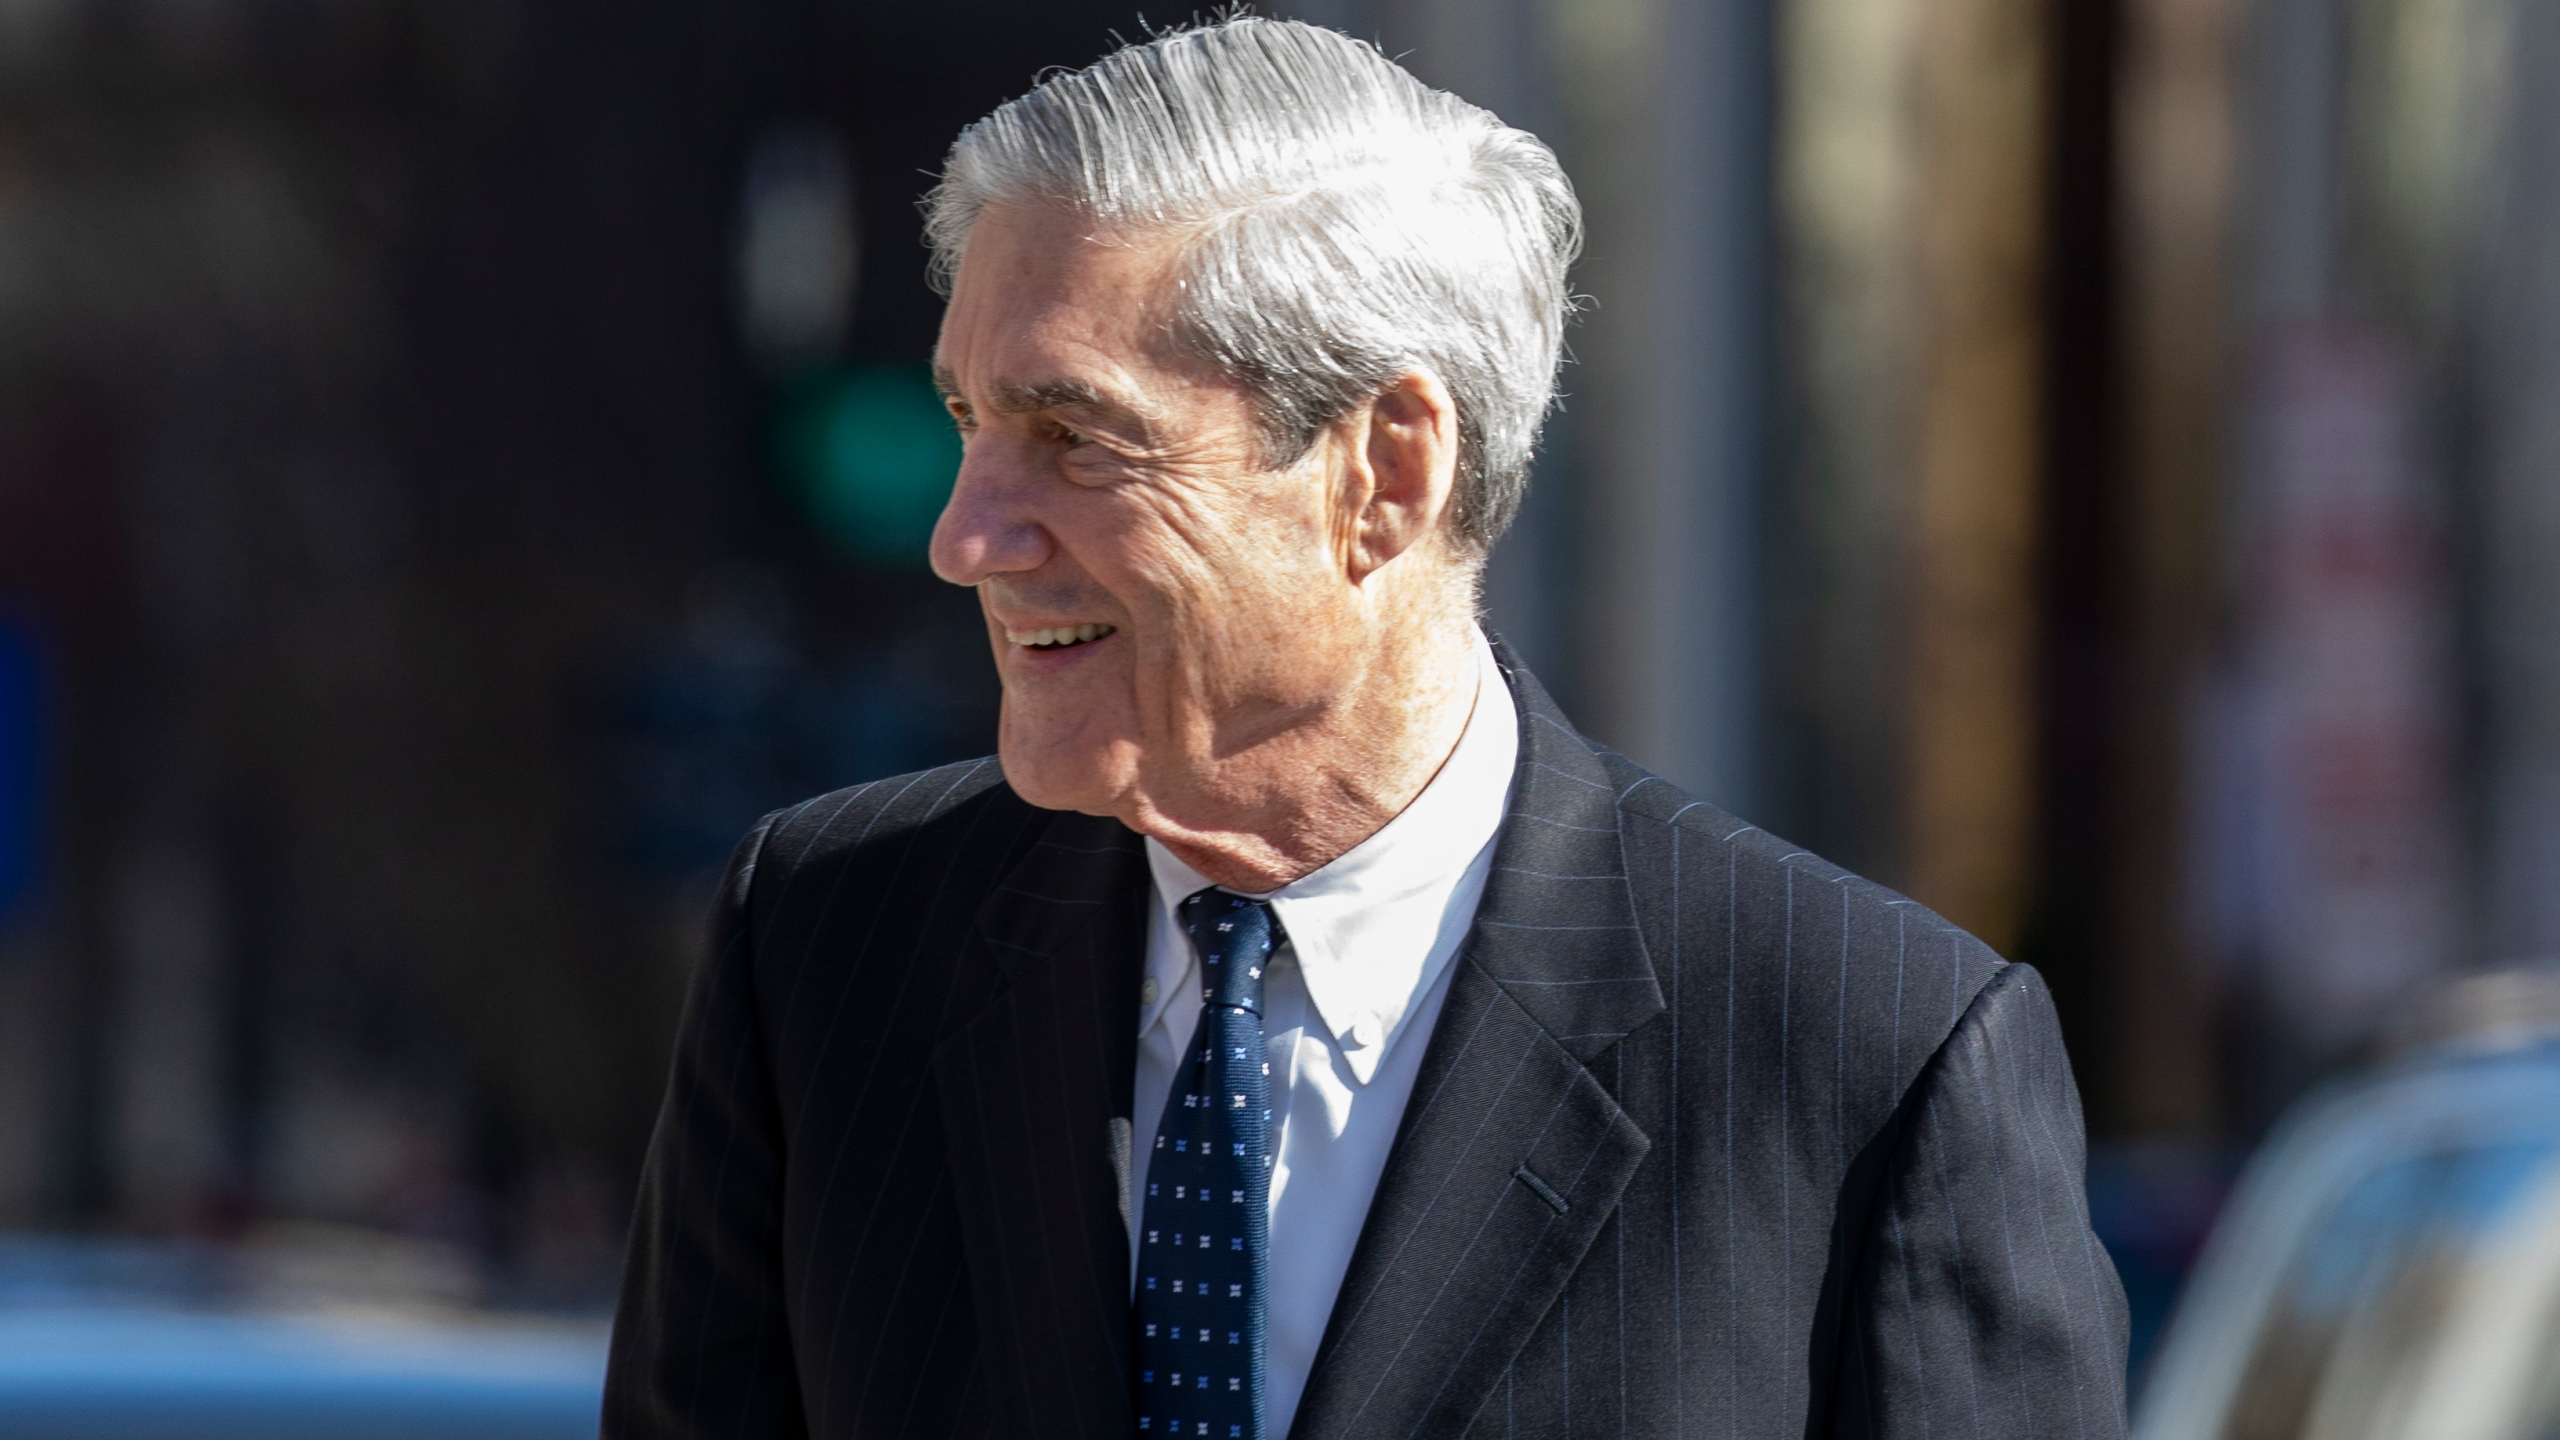 Special Counsel Robert Mueller walks after attending church on March 24, 2019 in Washington, D.C. (Credit: Tasos Katopodis/Getty Images)